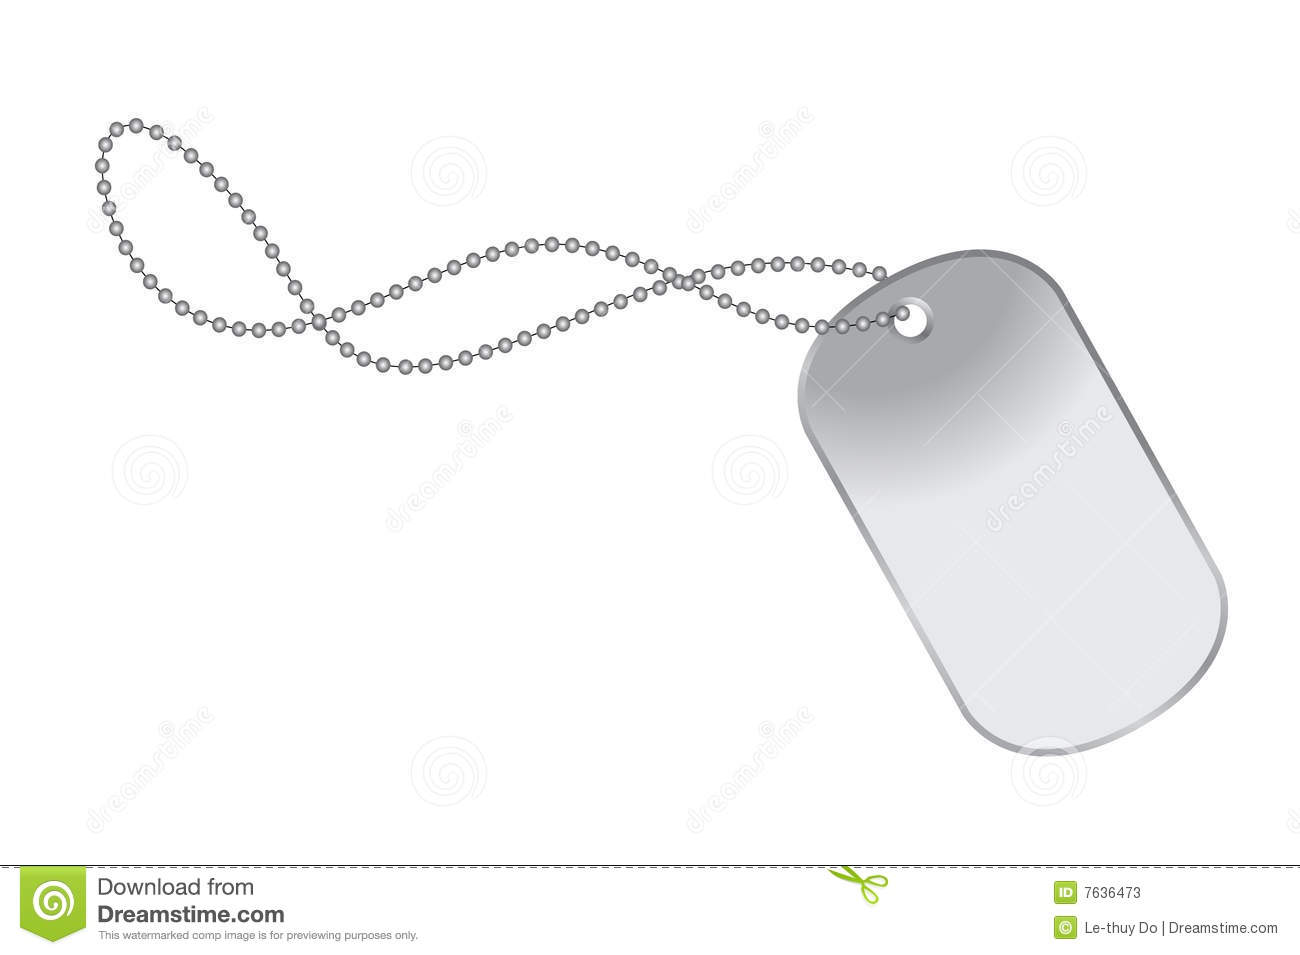 10 Dirty Dog Tag Vecto...